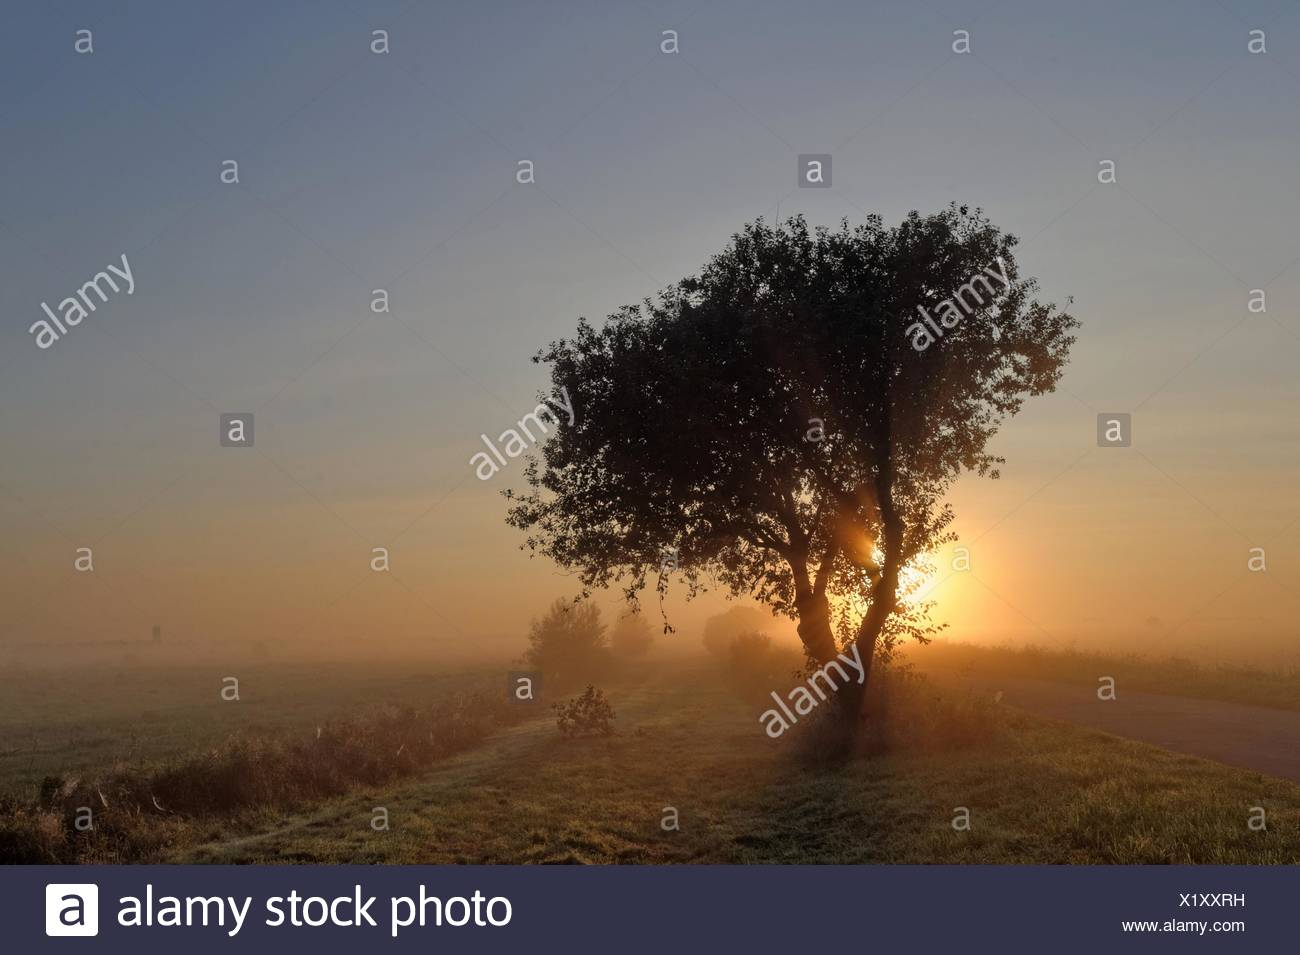 Germany, Lower Saxony, Leer, Oldersum, Tergast, Tree in meadow backlit by rising sun - Stock Image